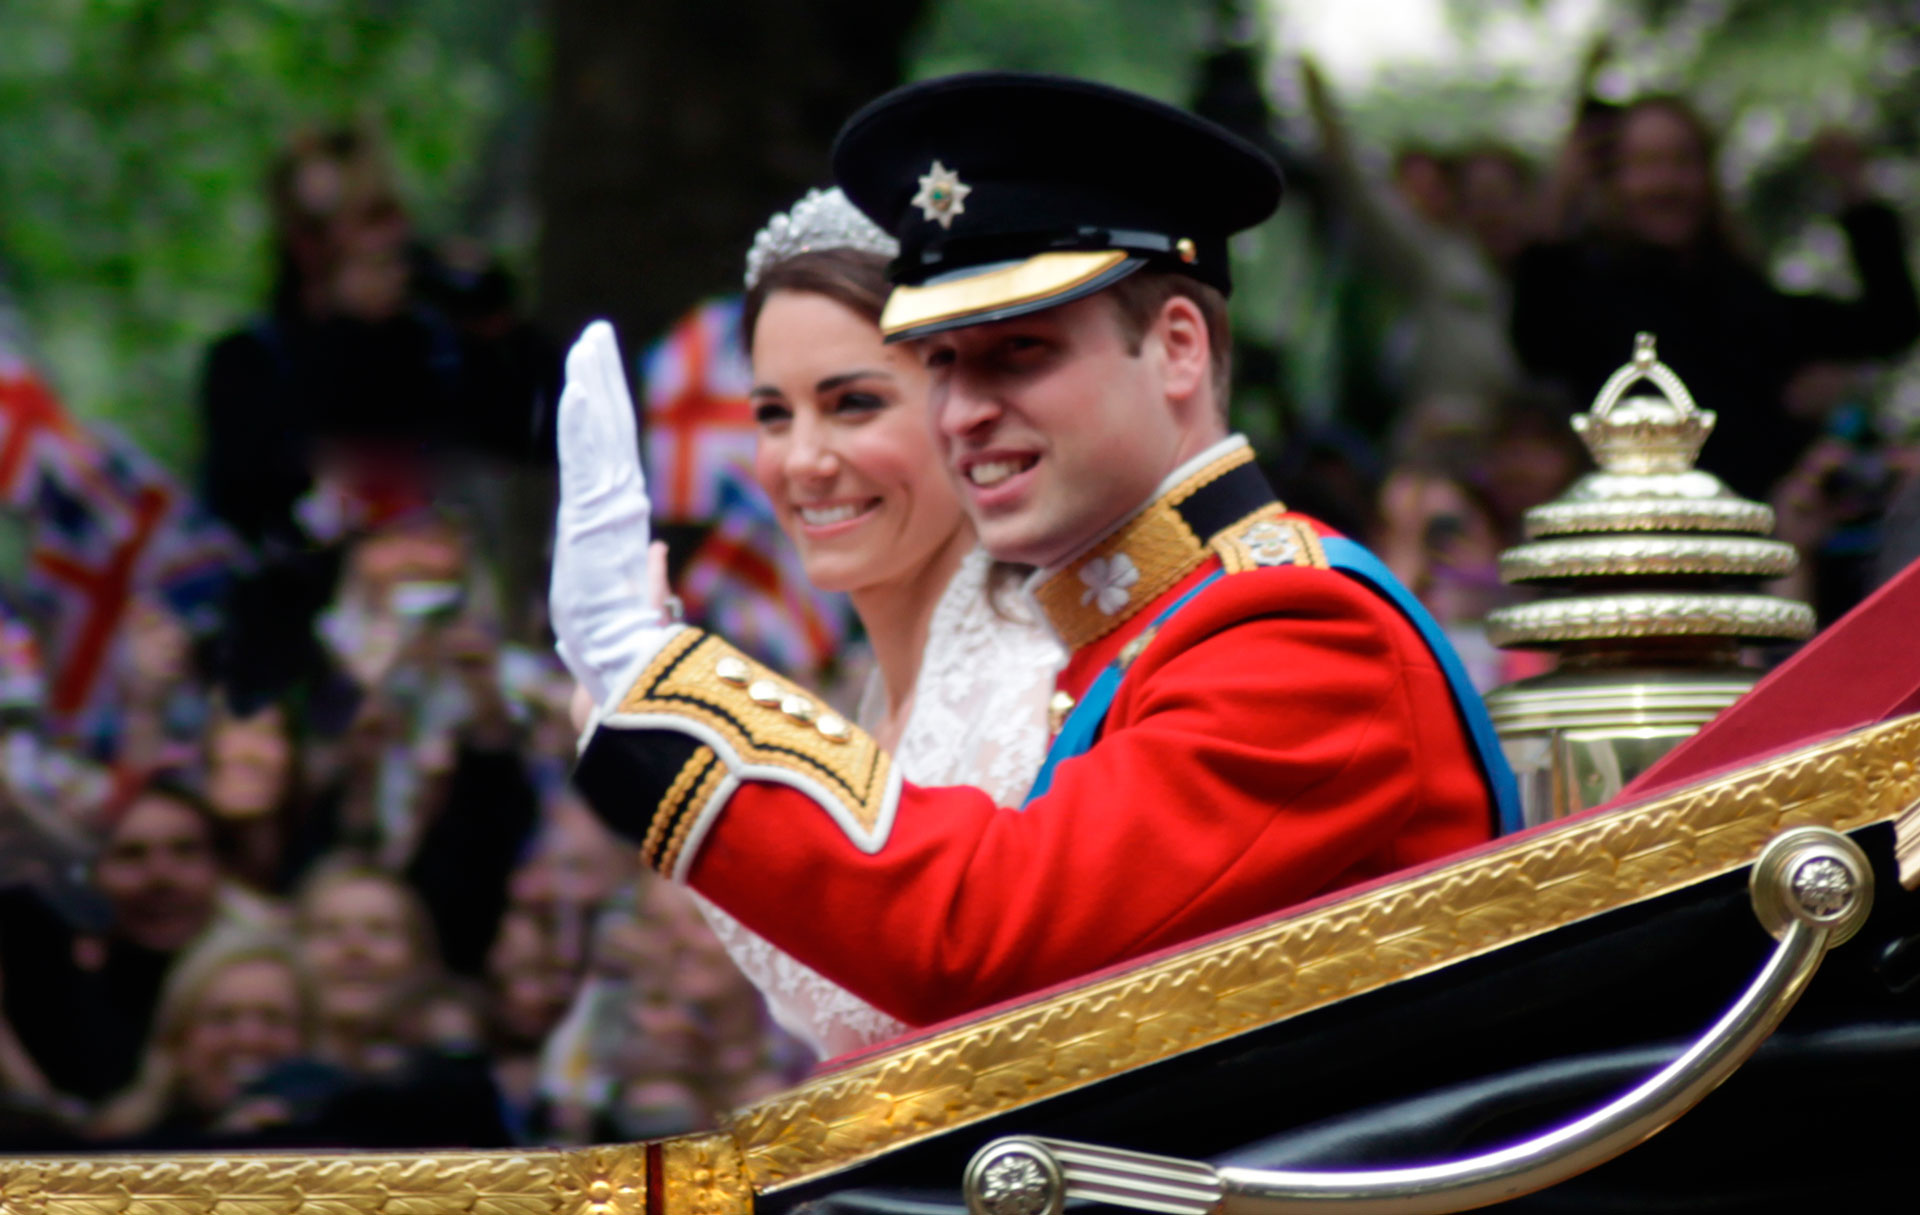 Photo: the wedding of Prince William, Duke of Cambridge and Catherine Middleton, 29 April 2011. The ceremony was viewed live by millions around the world.